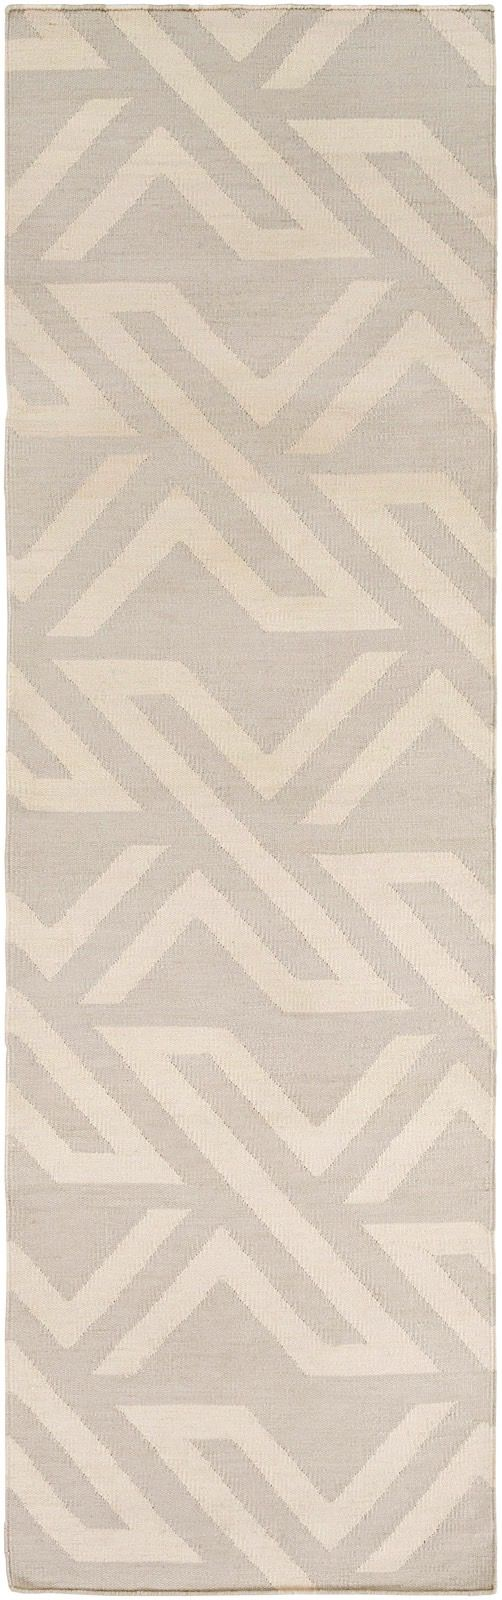 surya galvany contemporary area rug collection